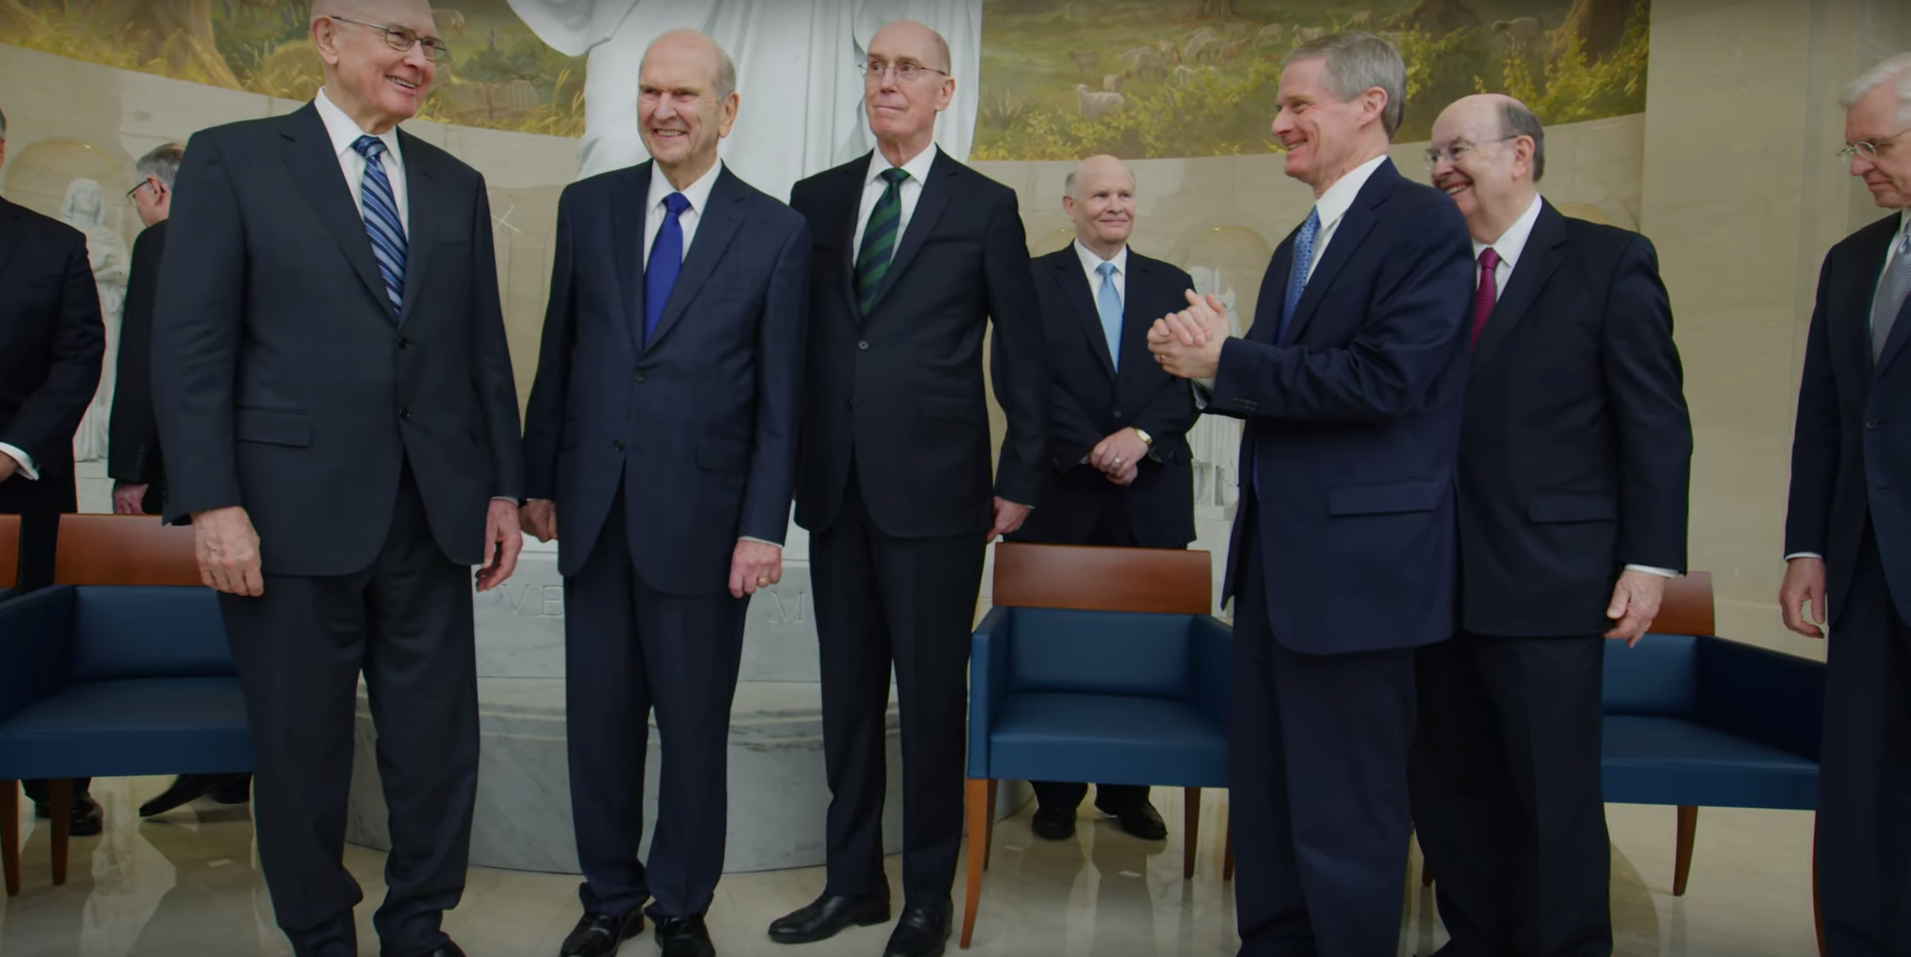 The First Presidency and members of the Quorum of the Twelve Apostles in the Rome Italy Temple Visitors' Center.